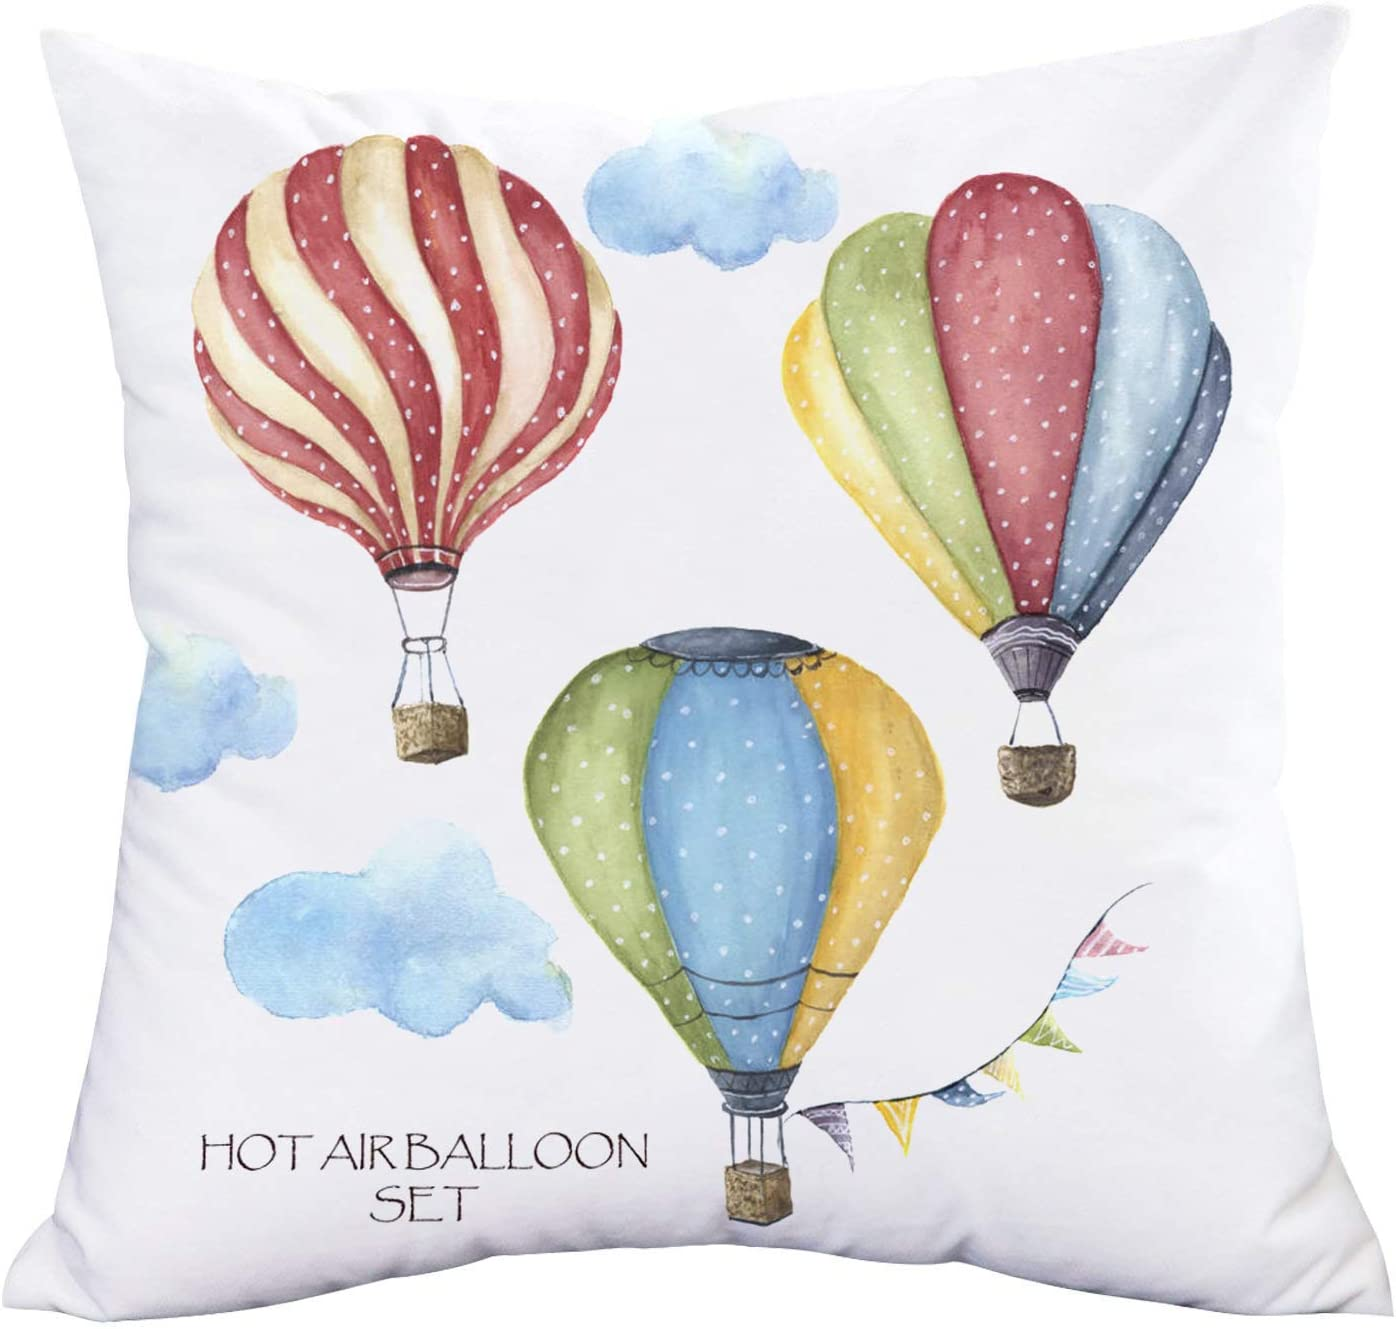 Amazon Com Vintage Colorful Hot Air Balloon Super Soft Throw Waist Pillow Case Cushion Cover Travel All Over The World Home Decorative Pillowcase For Sofa Couch 18 X18 Hot Air Balloon 05 Home